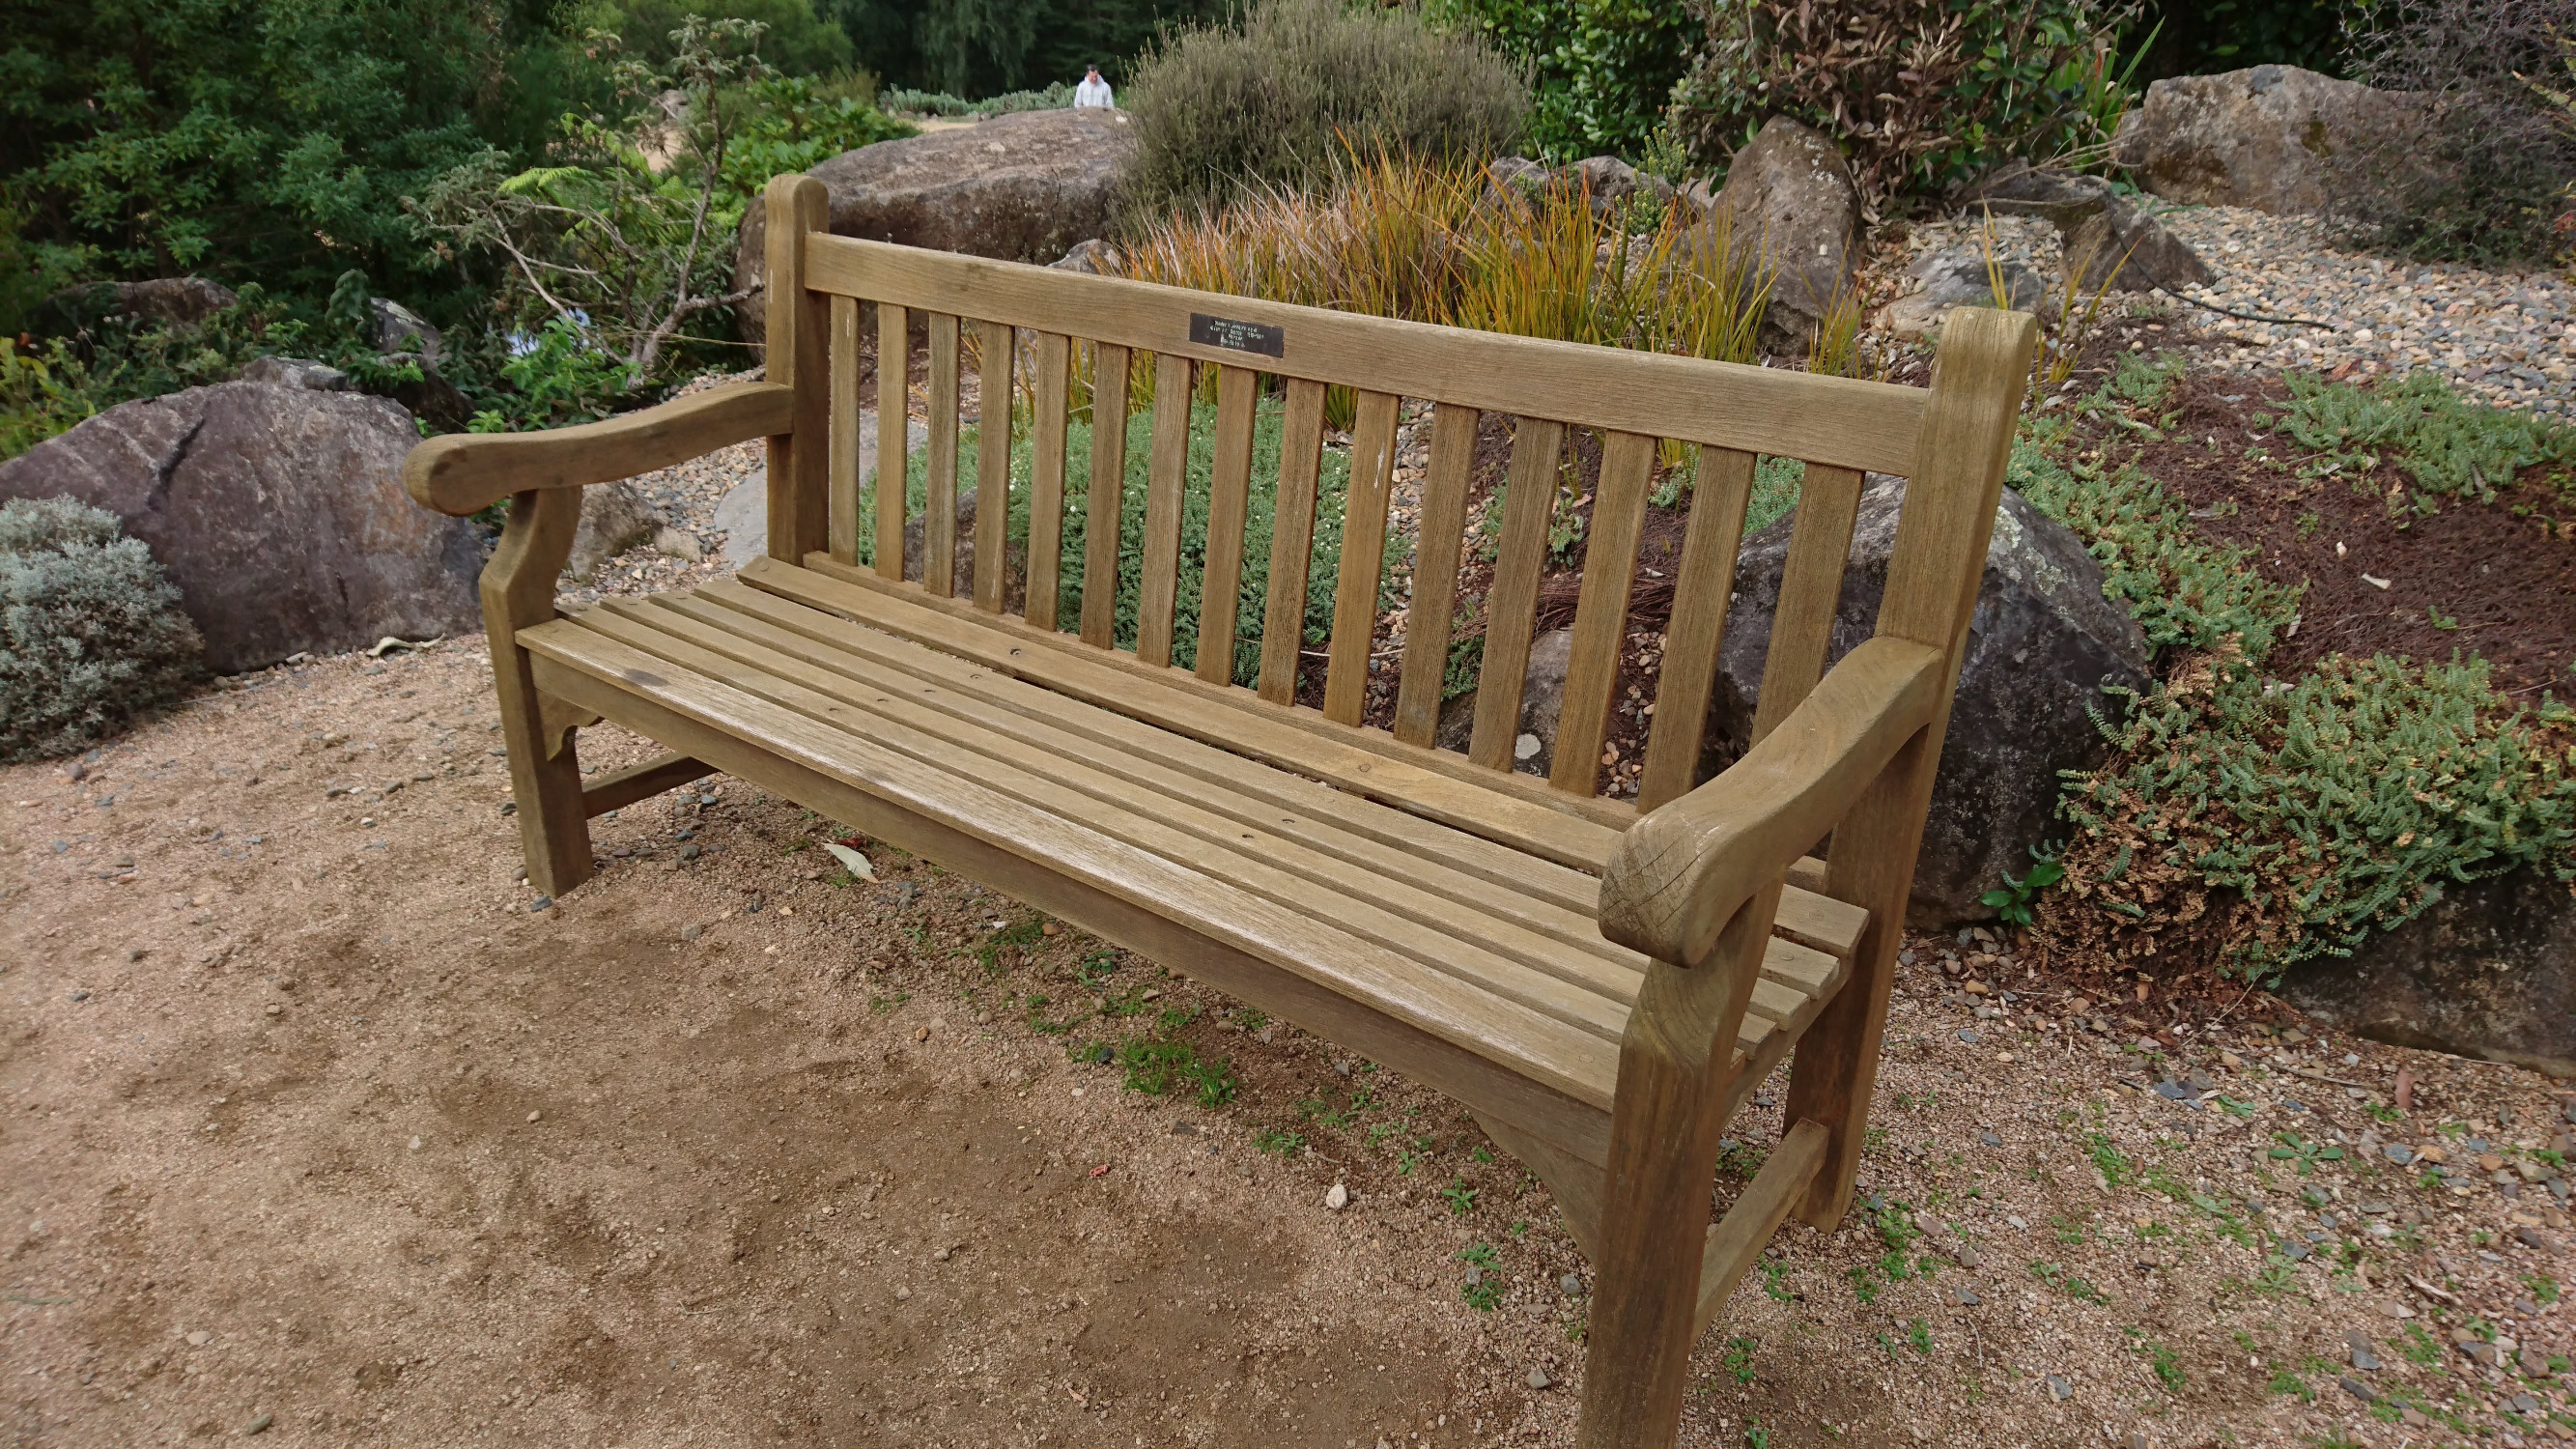 park benches dotted around the gardens